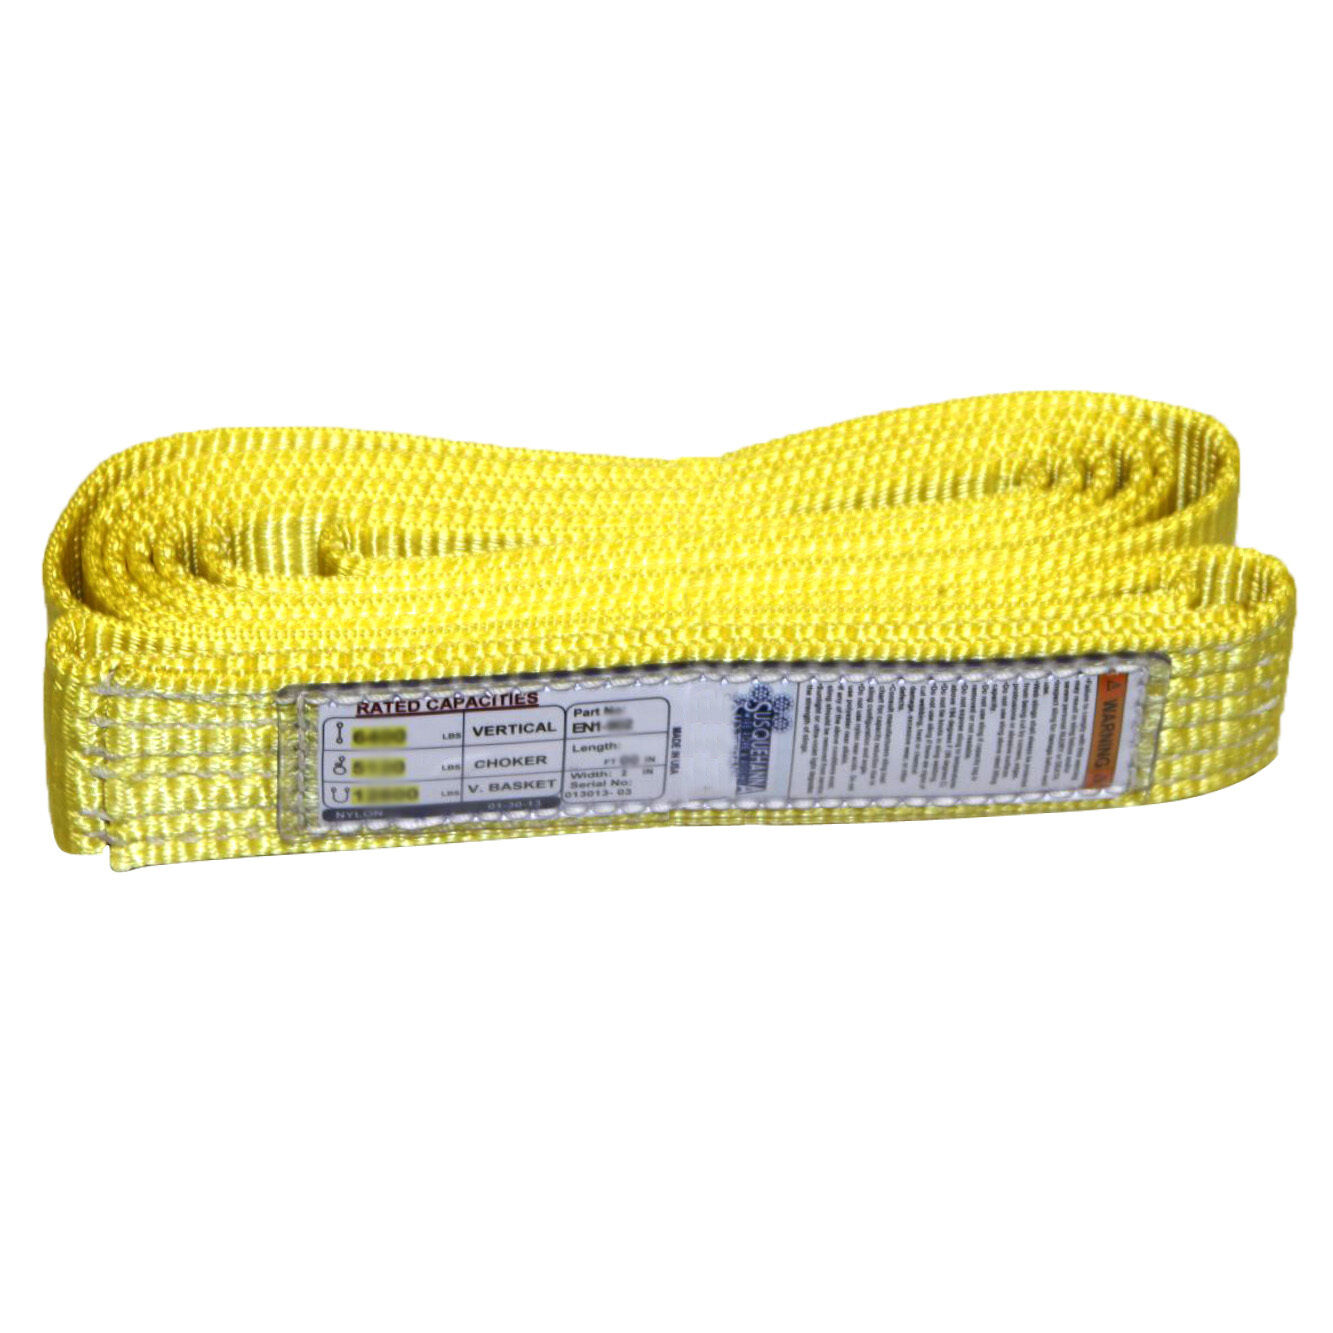 "2/"" x 8/' Endless Web Lifting Sling Nylon 2 Ply Tow Strap Yellow USA EN2-902"